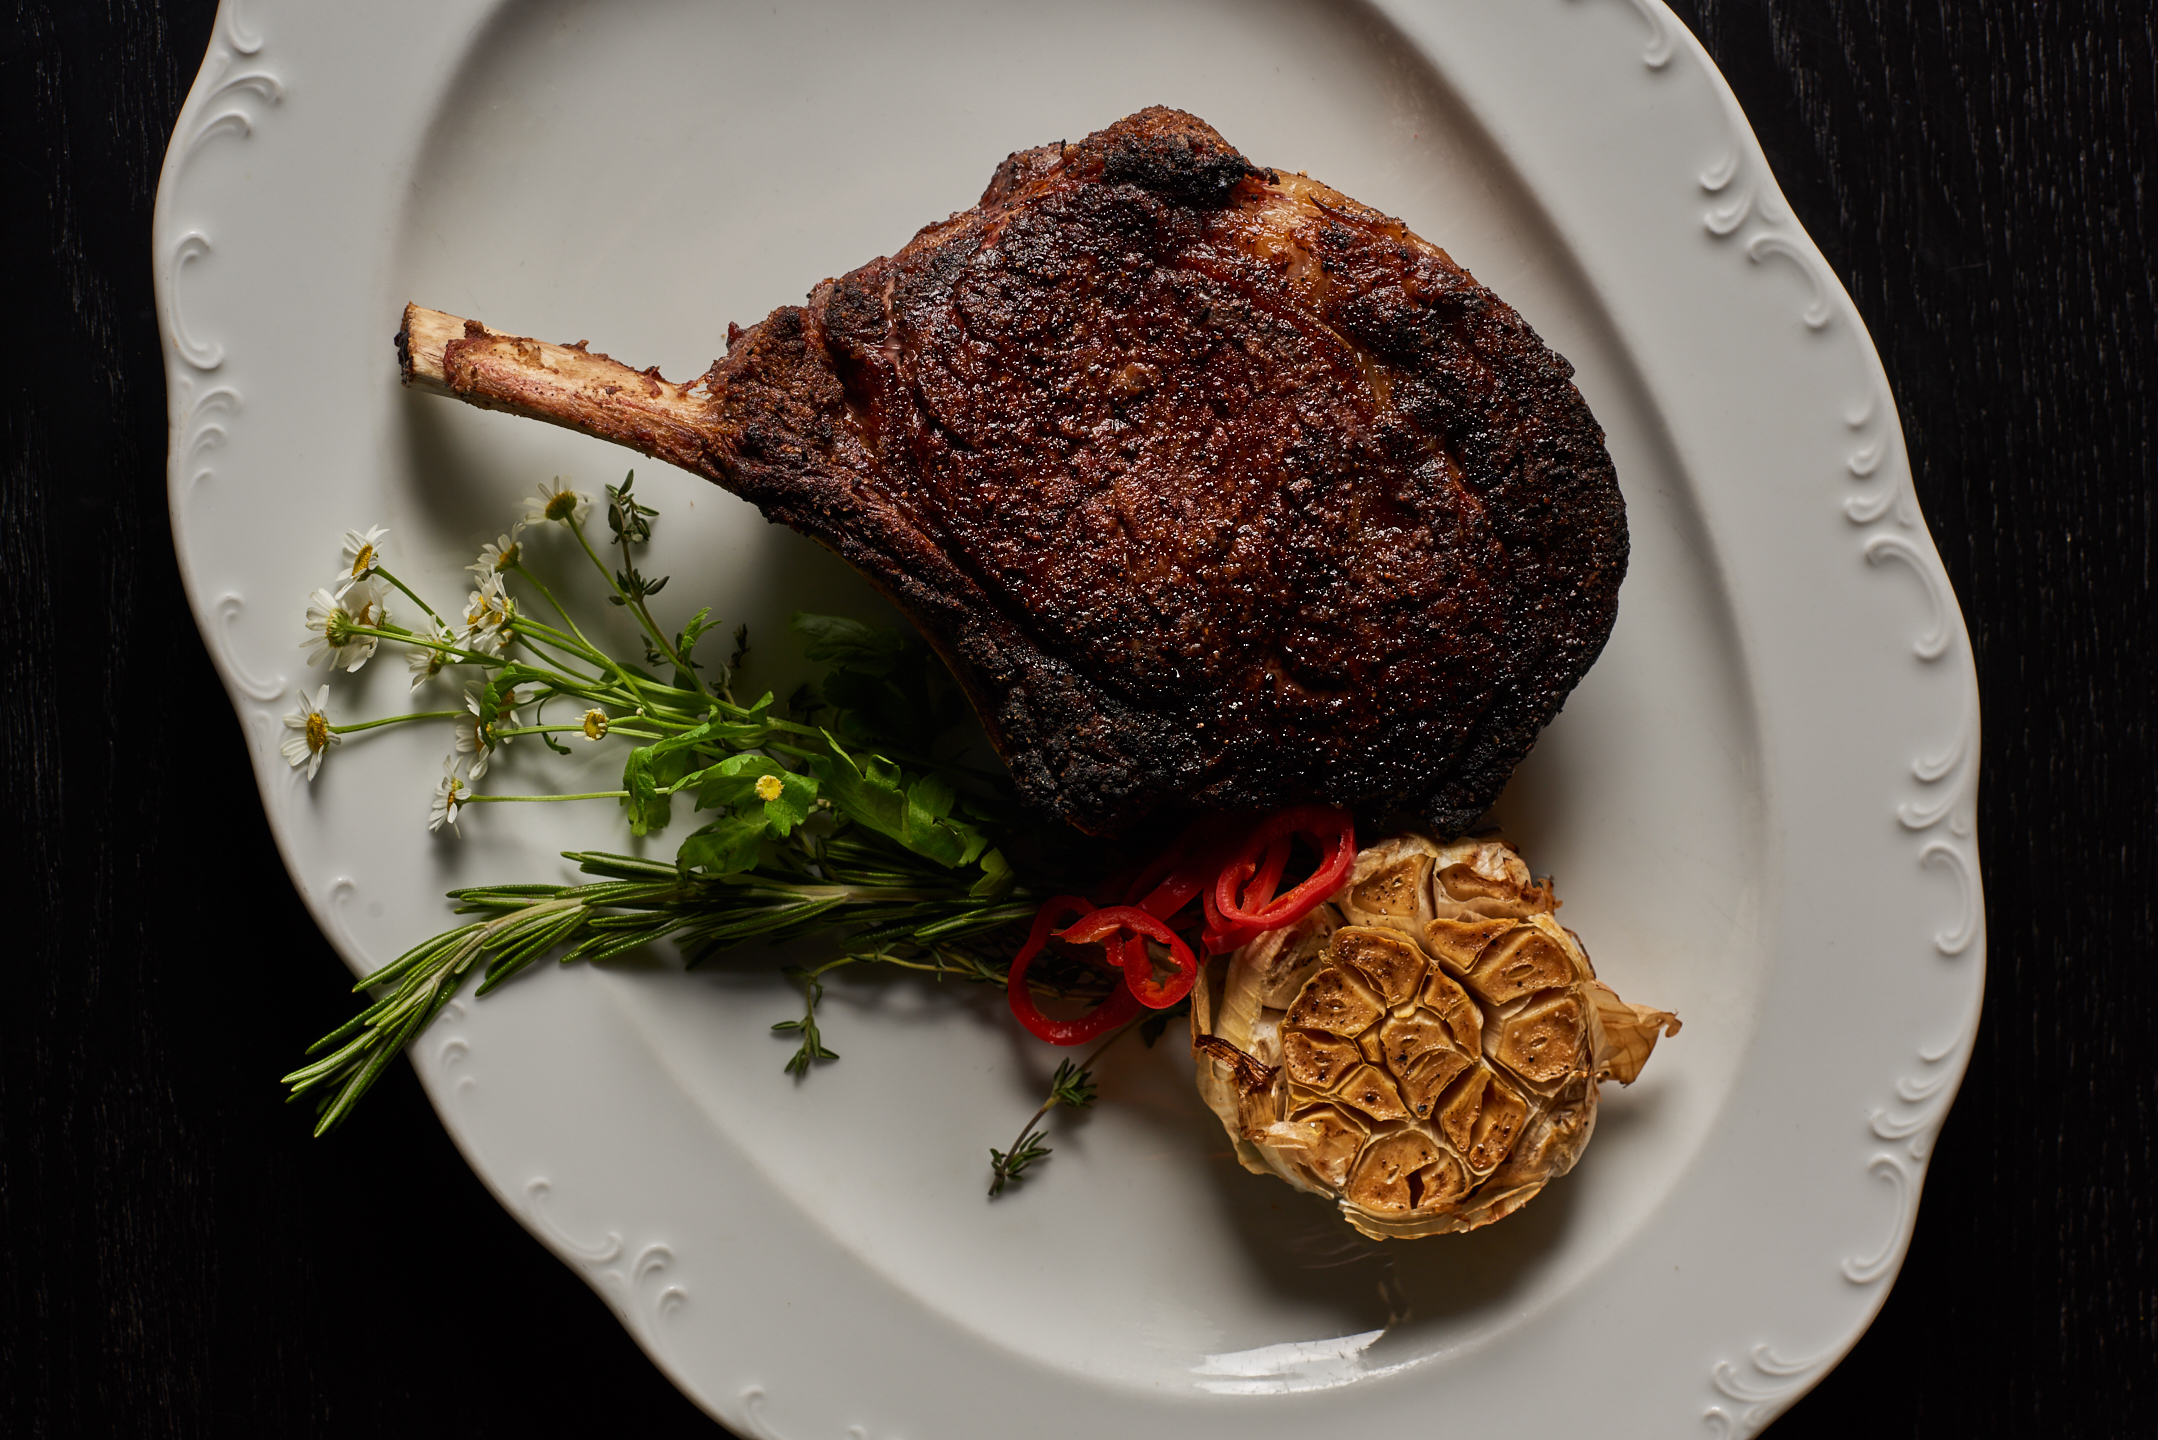 A 20-ounce bone-in ribeye steak